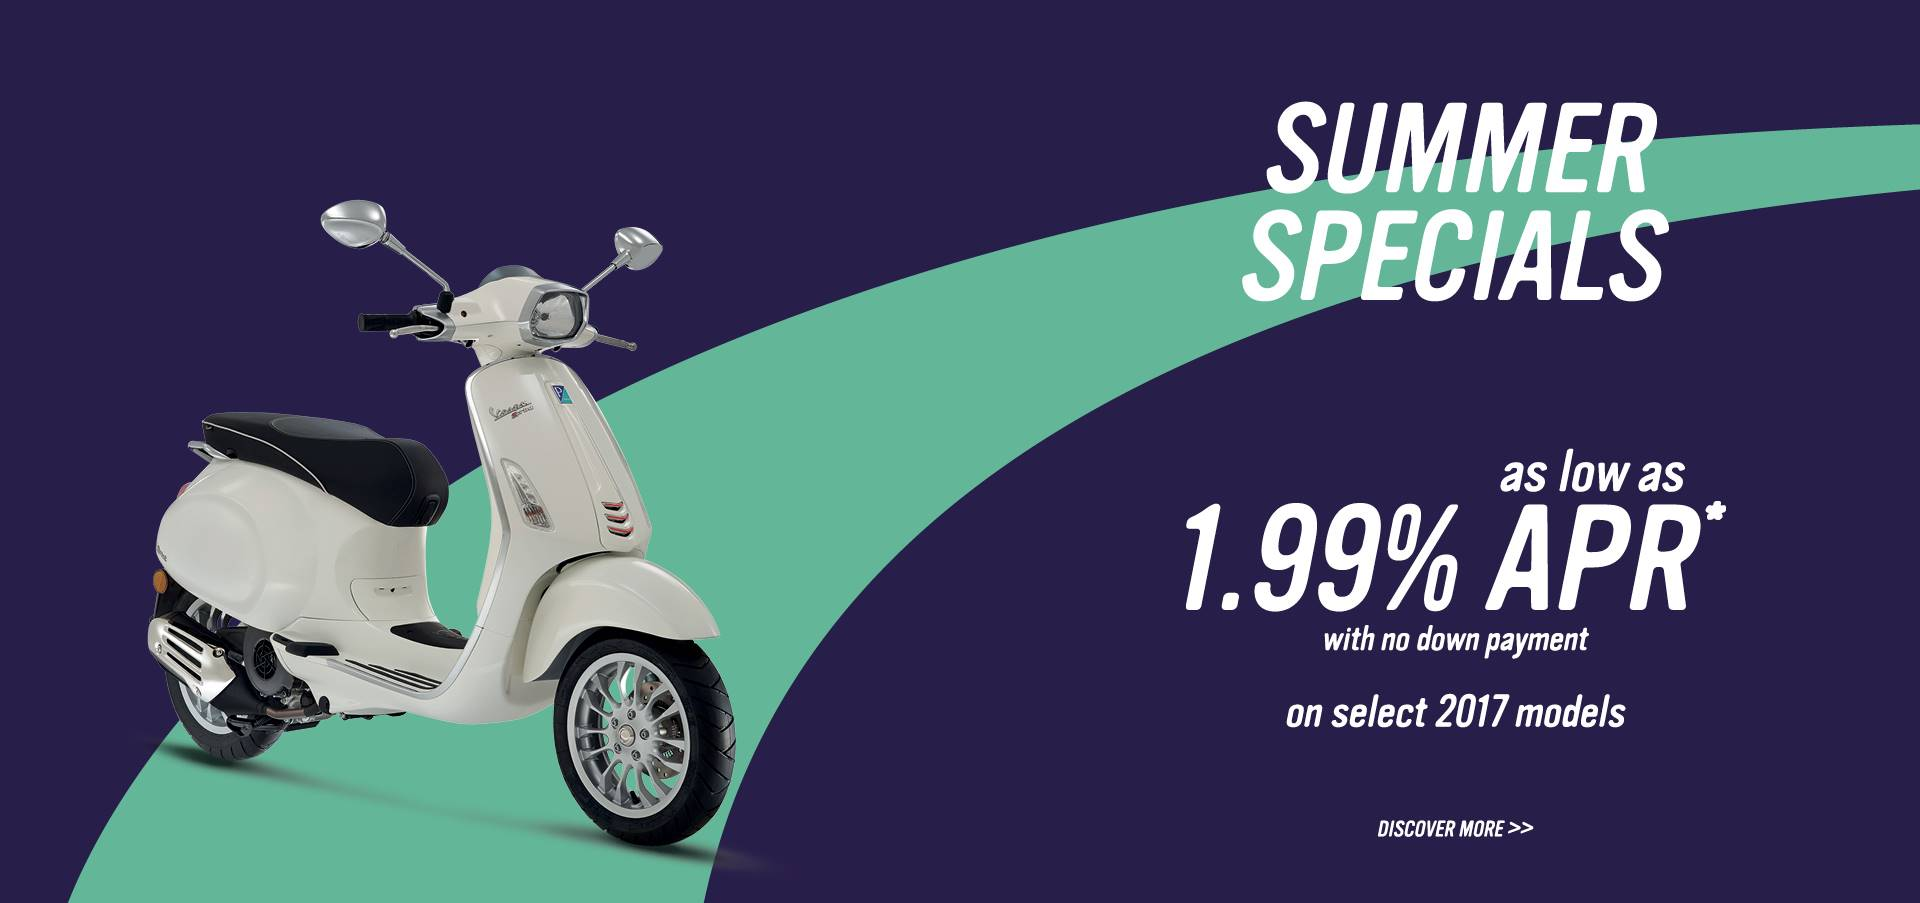 Vespa - Summer is here! Amazing offers on select 2017 models!